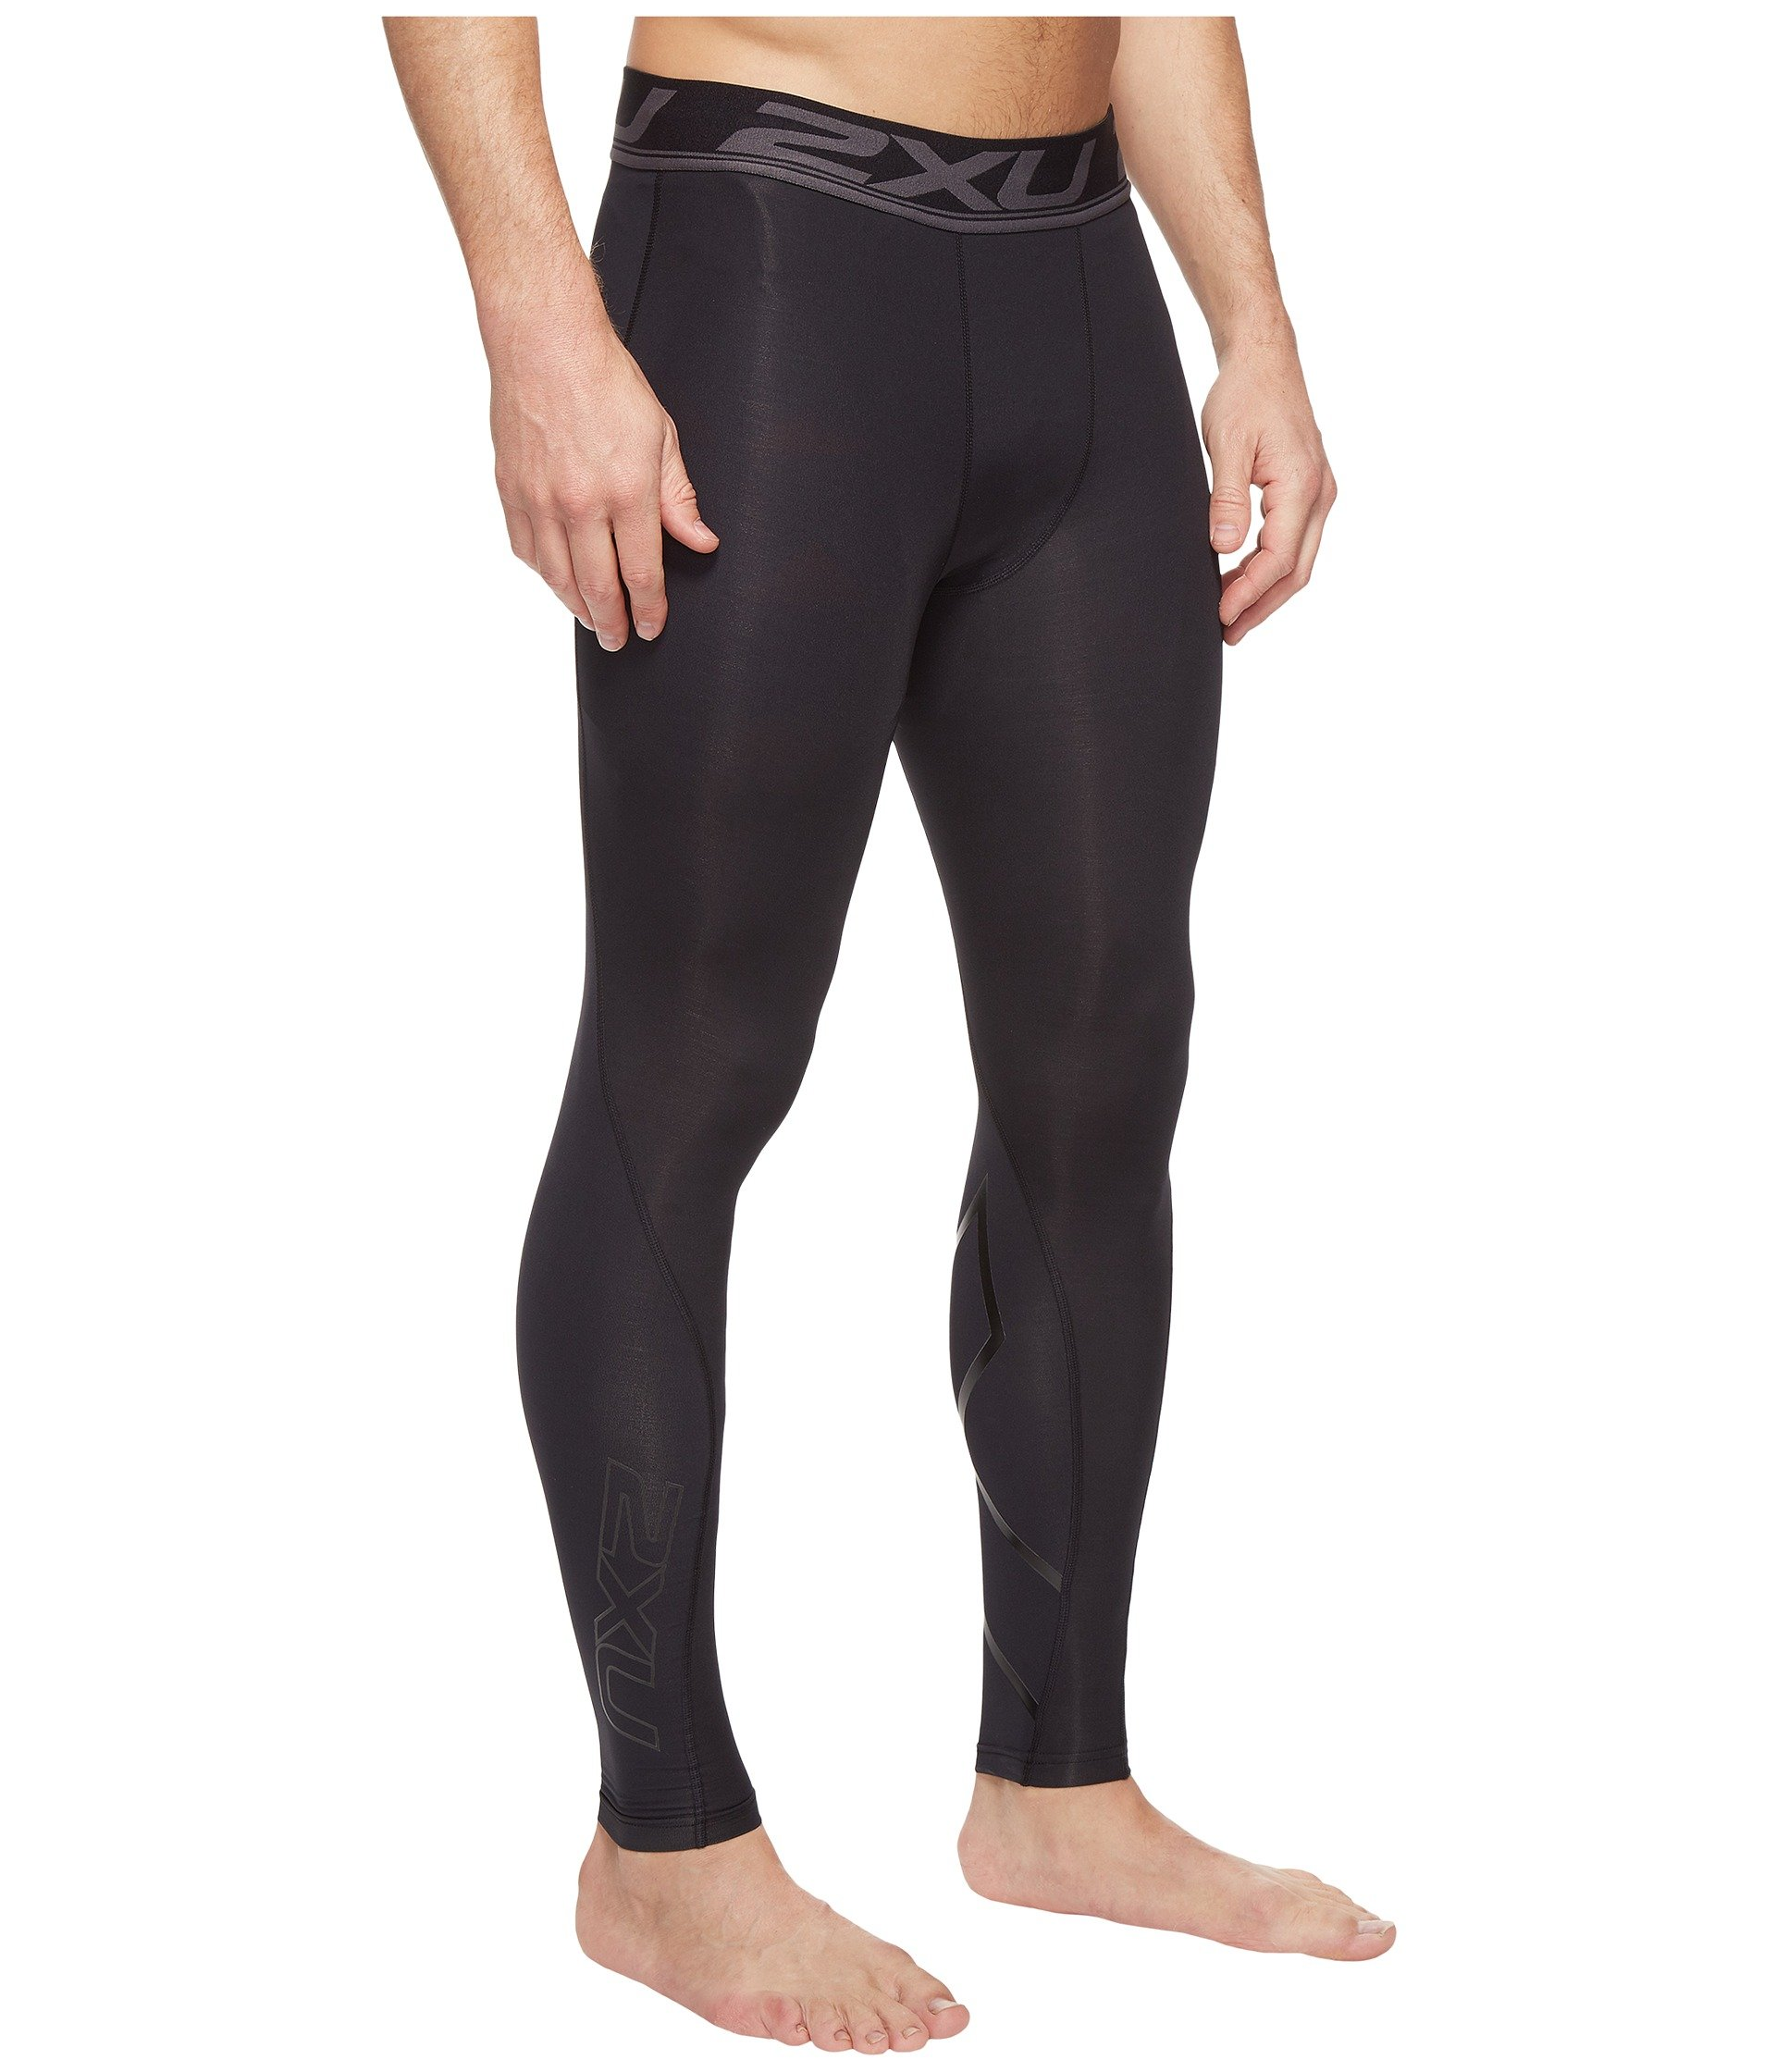 nero Accelerate Black 2xu Tights Compression W6PPpnd4